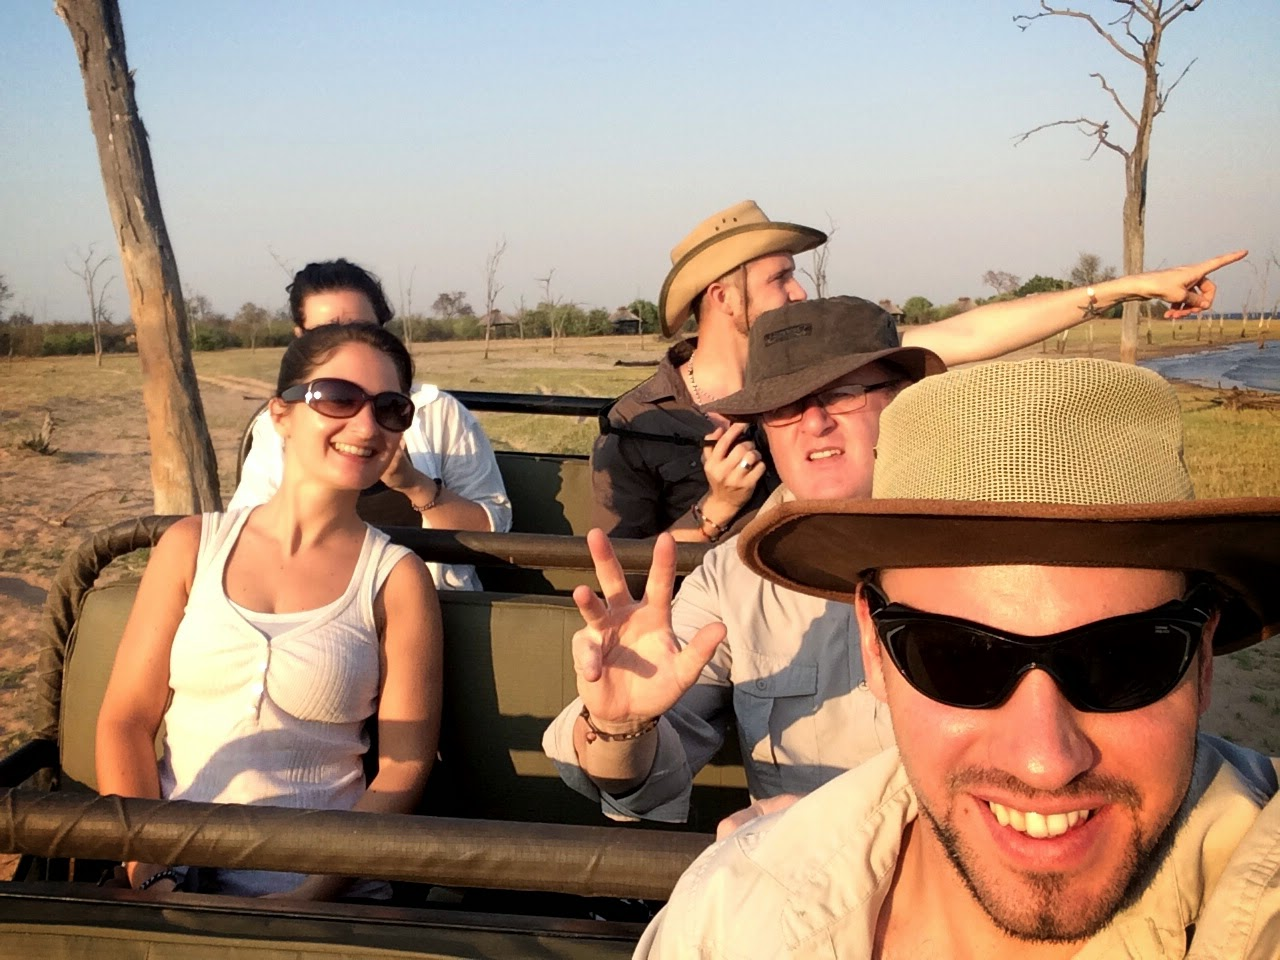 Game drive selfie - Rhino Safari Camp concession